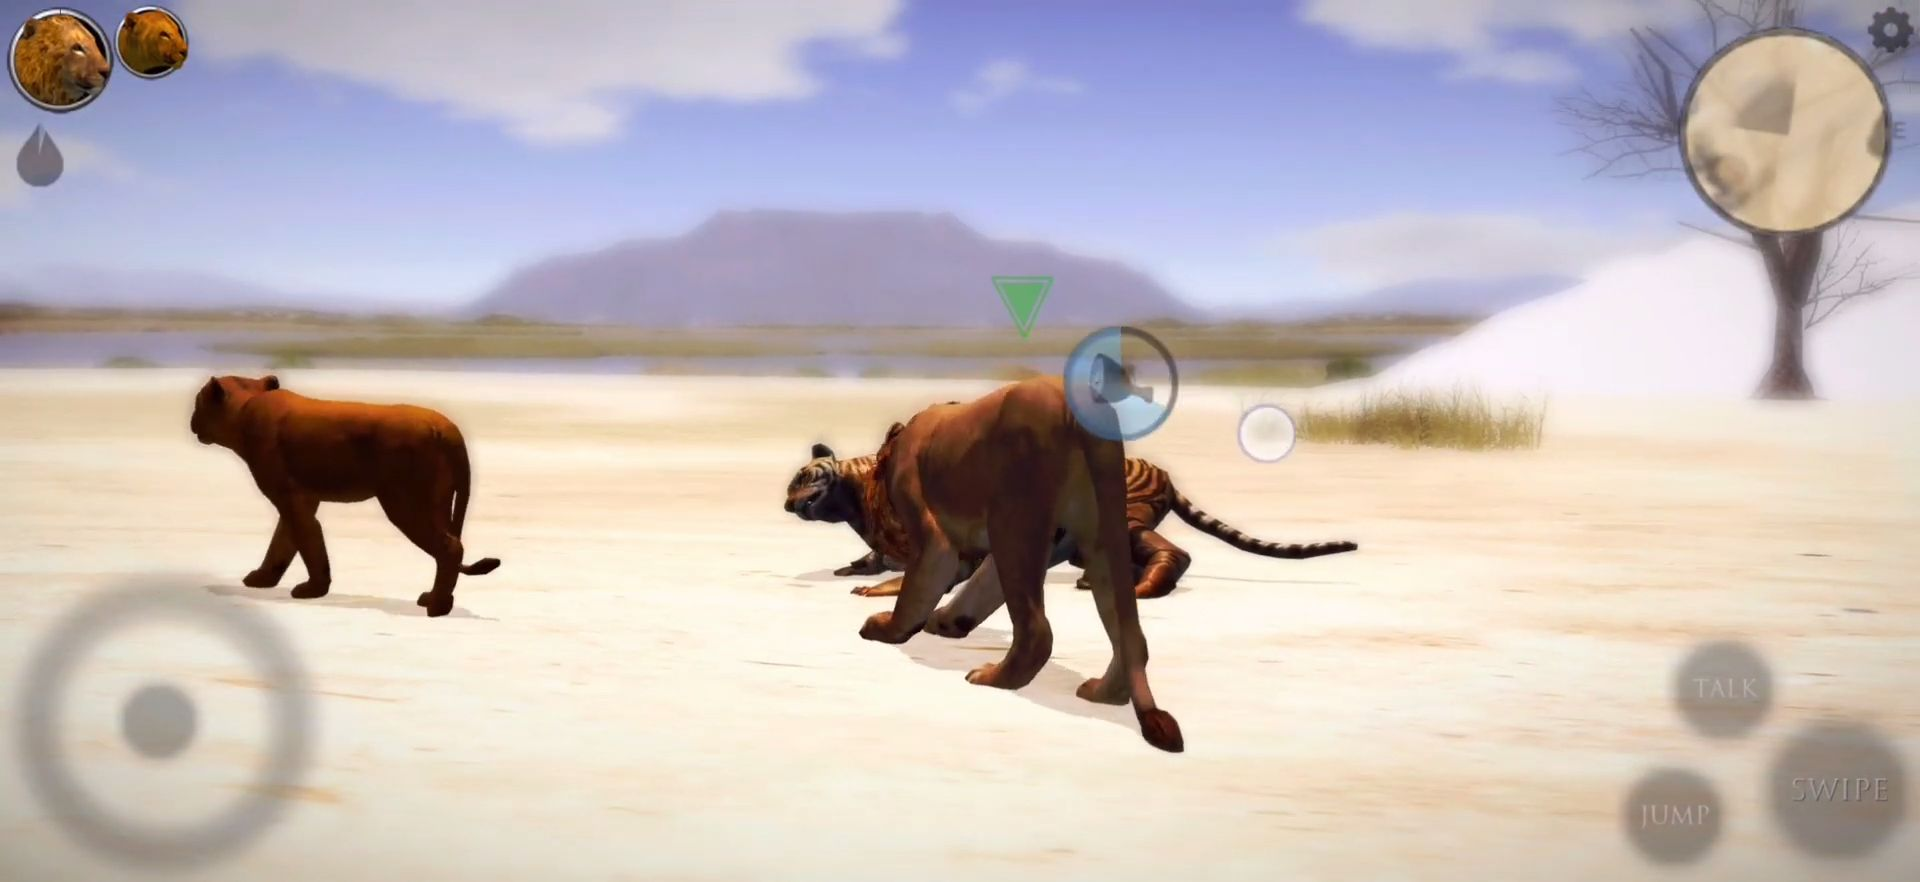 Ultimate Lion Simulator 2 for Android